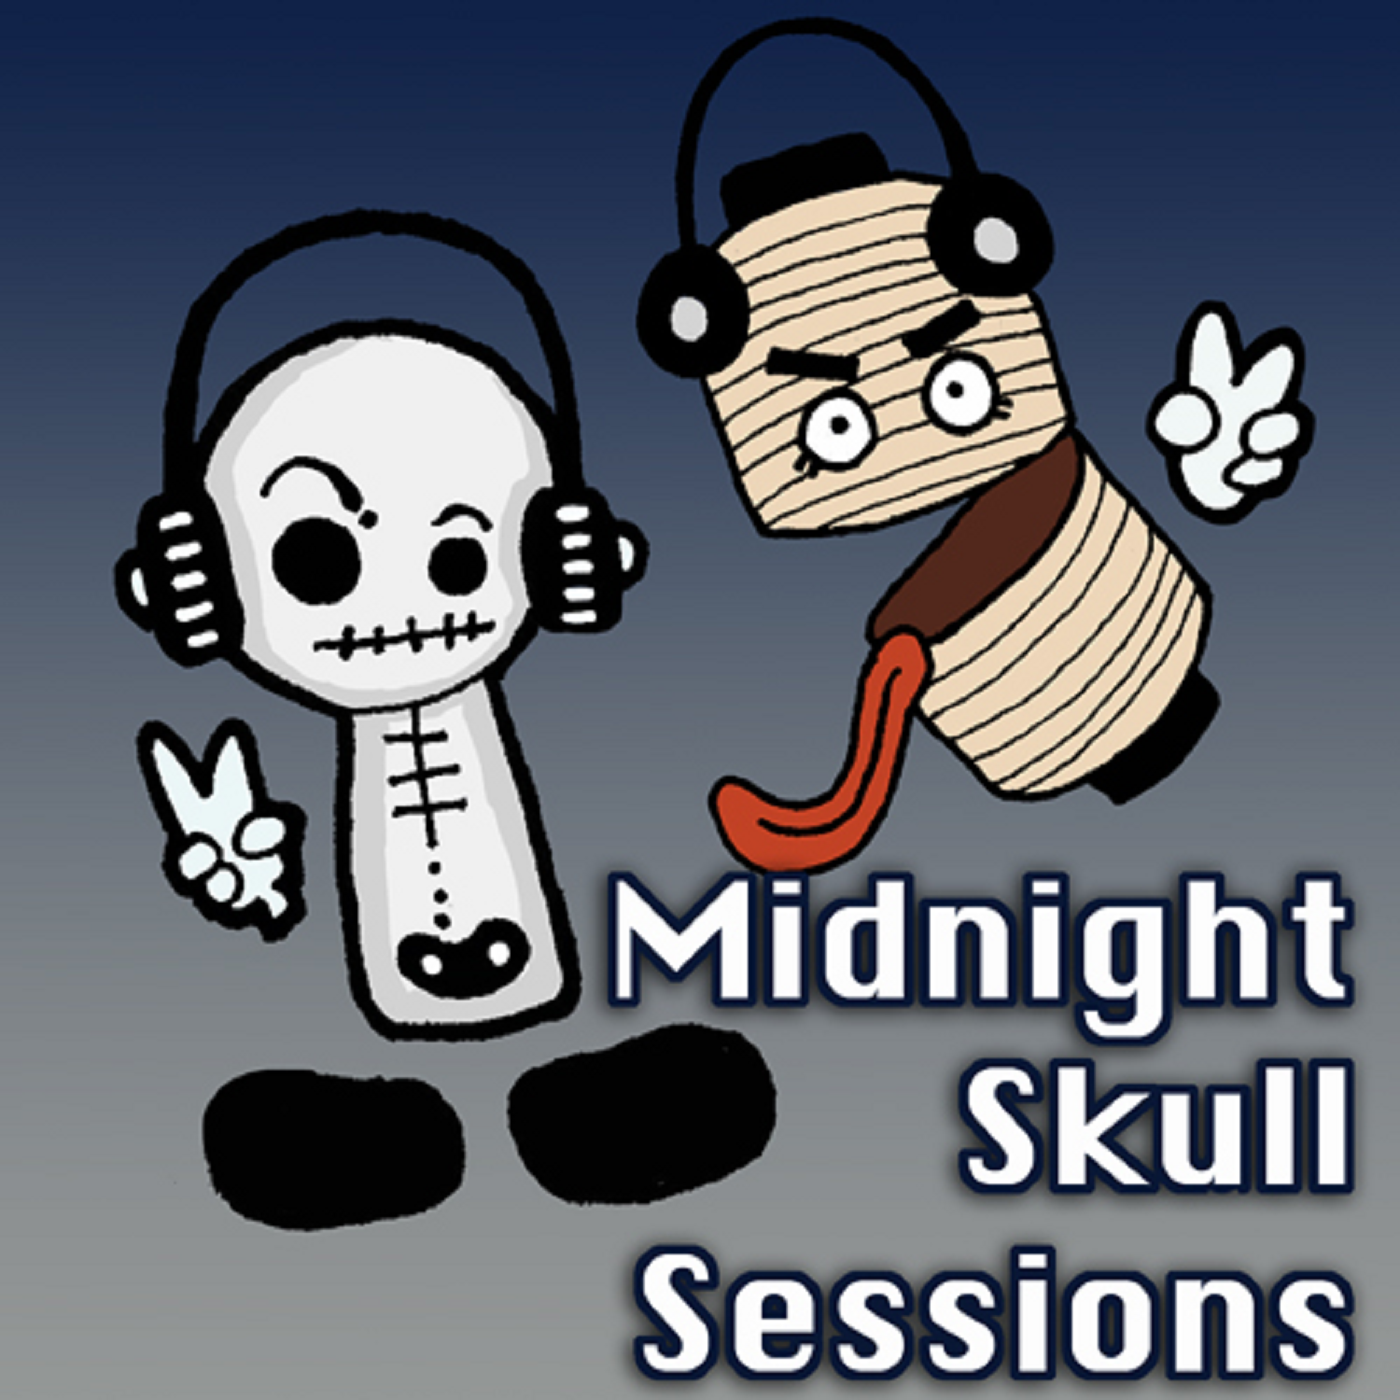 Midnight Skull Sessions - Episode 113 show art